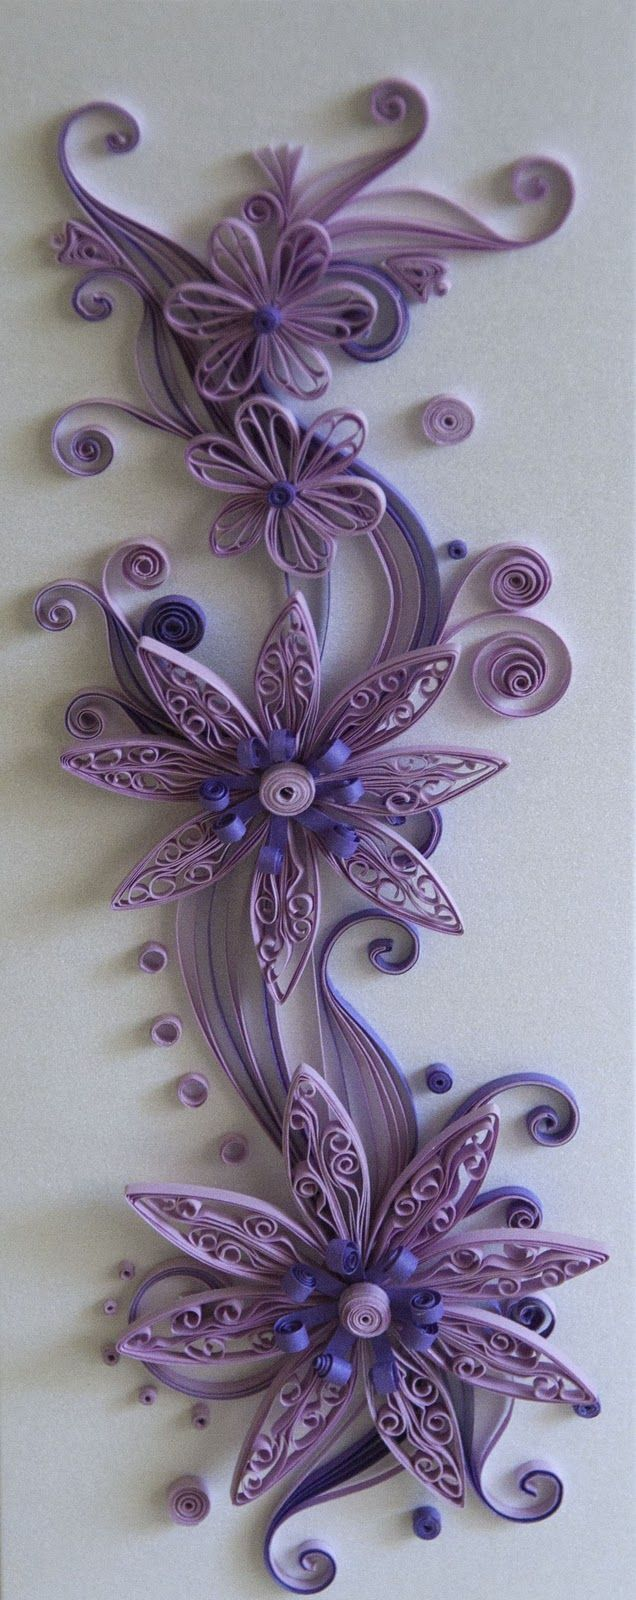 Quilling—essentially paper curling and crimping with approximate ¼″ wide strips of paper. This is a quite activity I would love to try. It's a way to kill about 6 months of time.  they NEED to be under glass because of cleanability I'm happy with black on white. Flee Markets are fun places to go and walk and look eascc